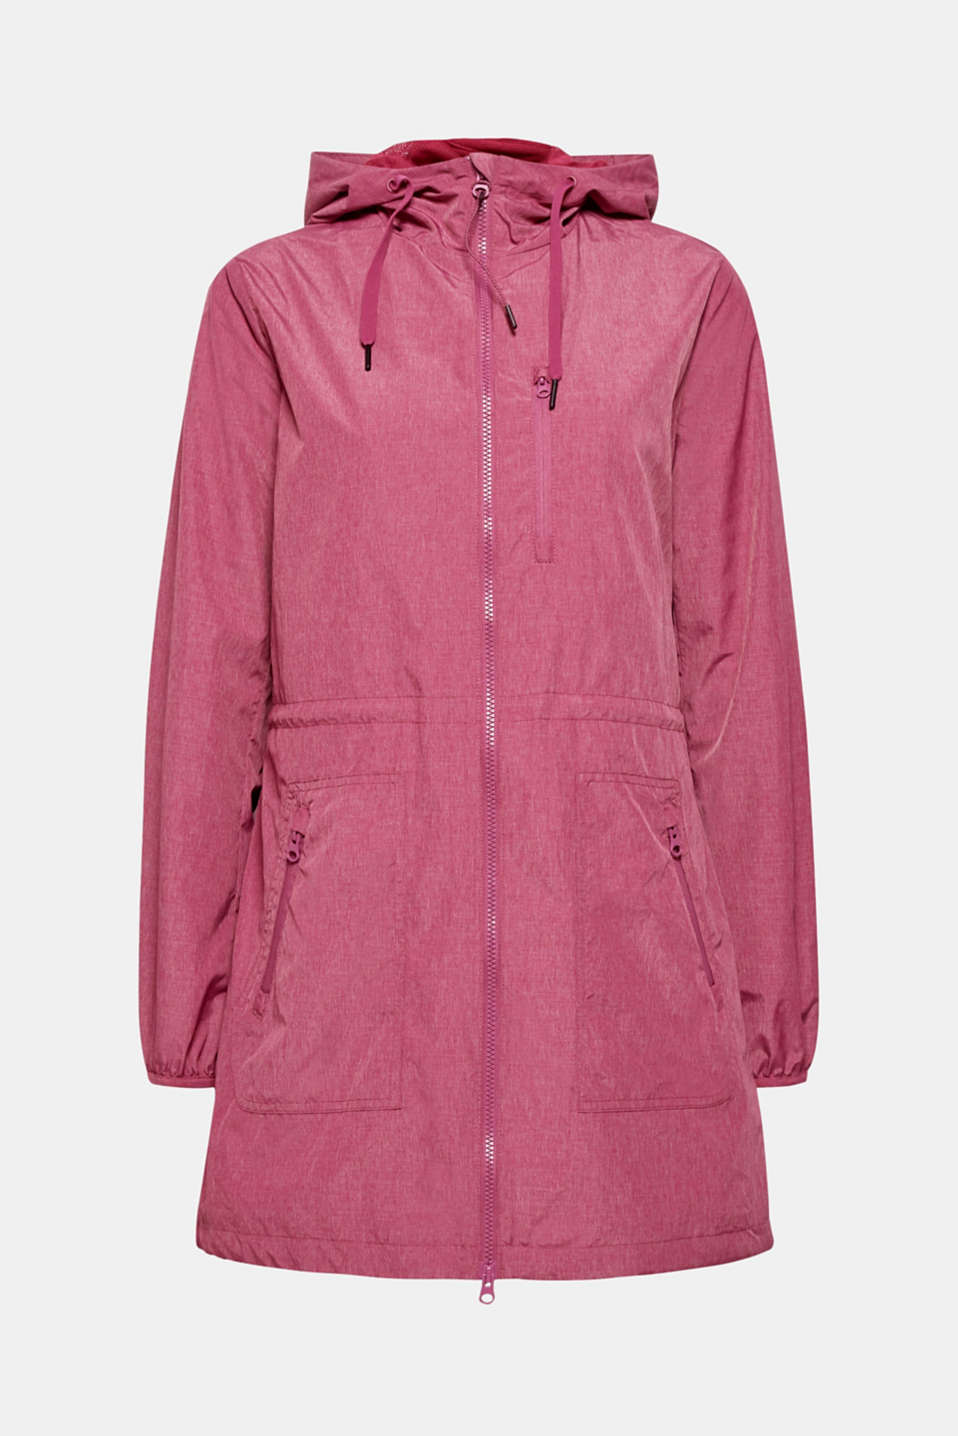 Jackets outdoor woven, DARK PINK 2, detail image number 8